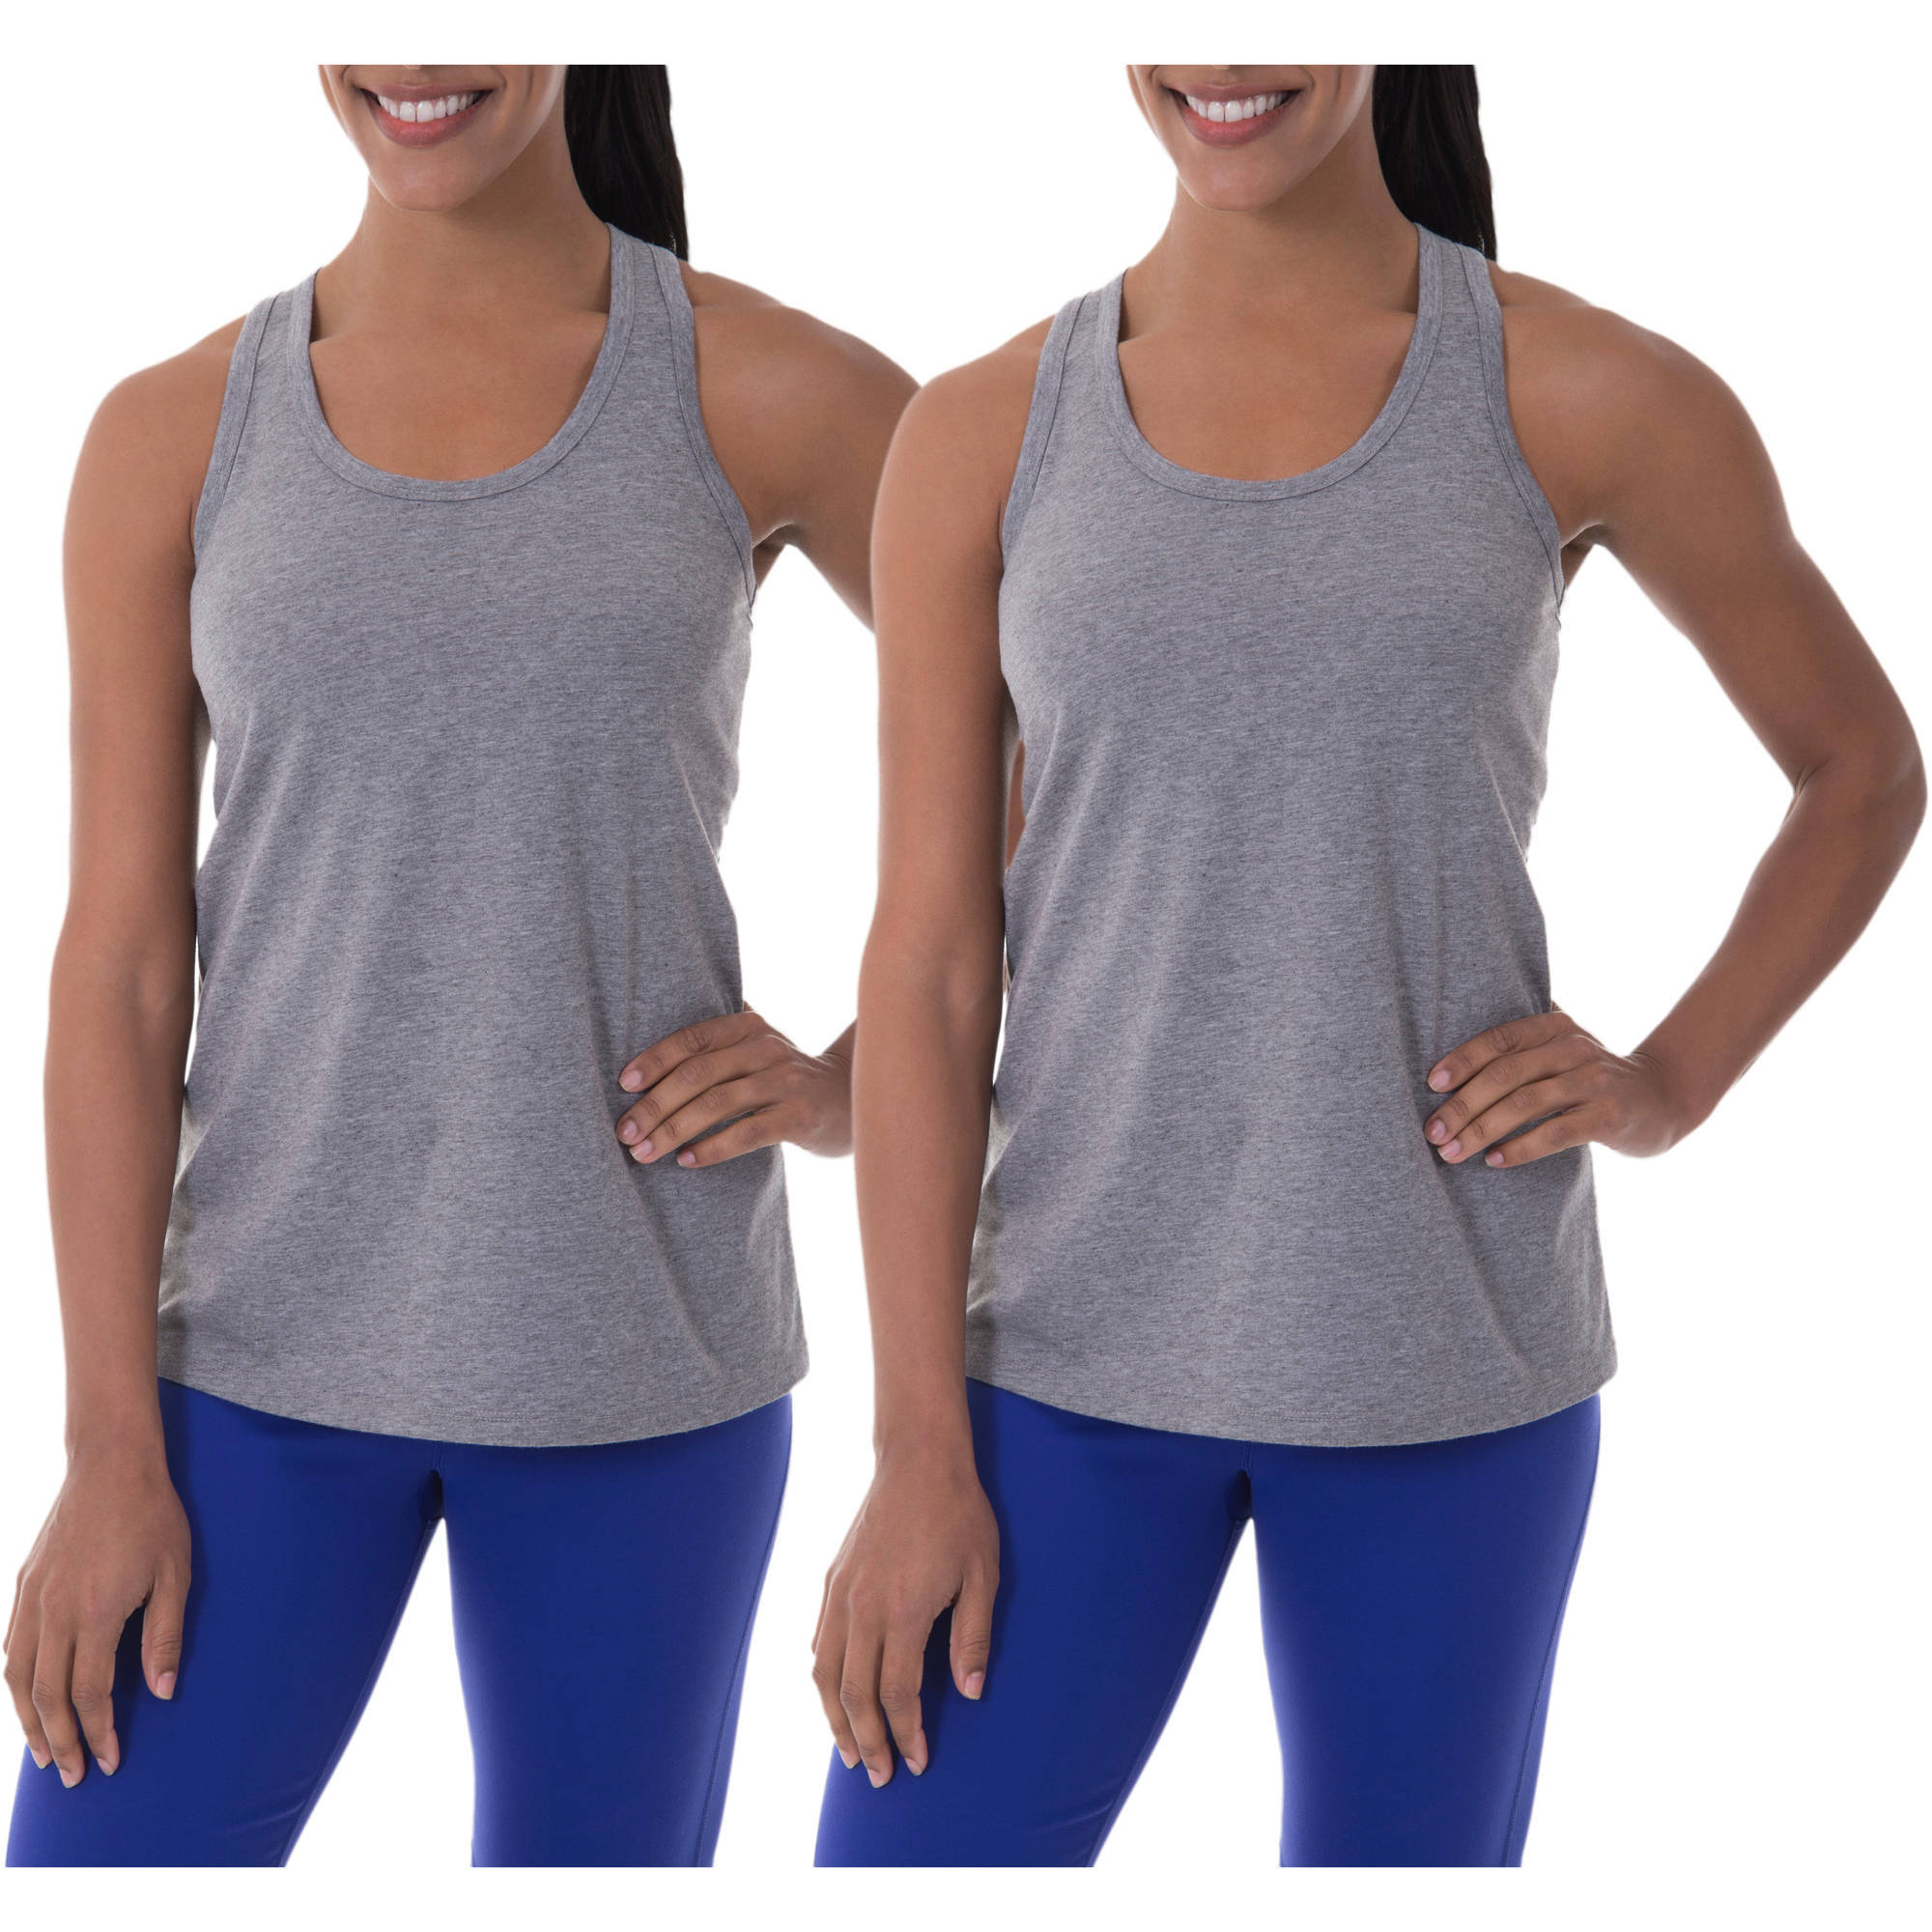 Danskin Now Women's Active Tank Top, 2 Pack Value Bundle